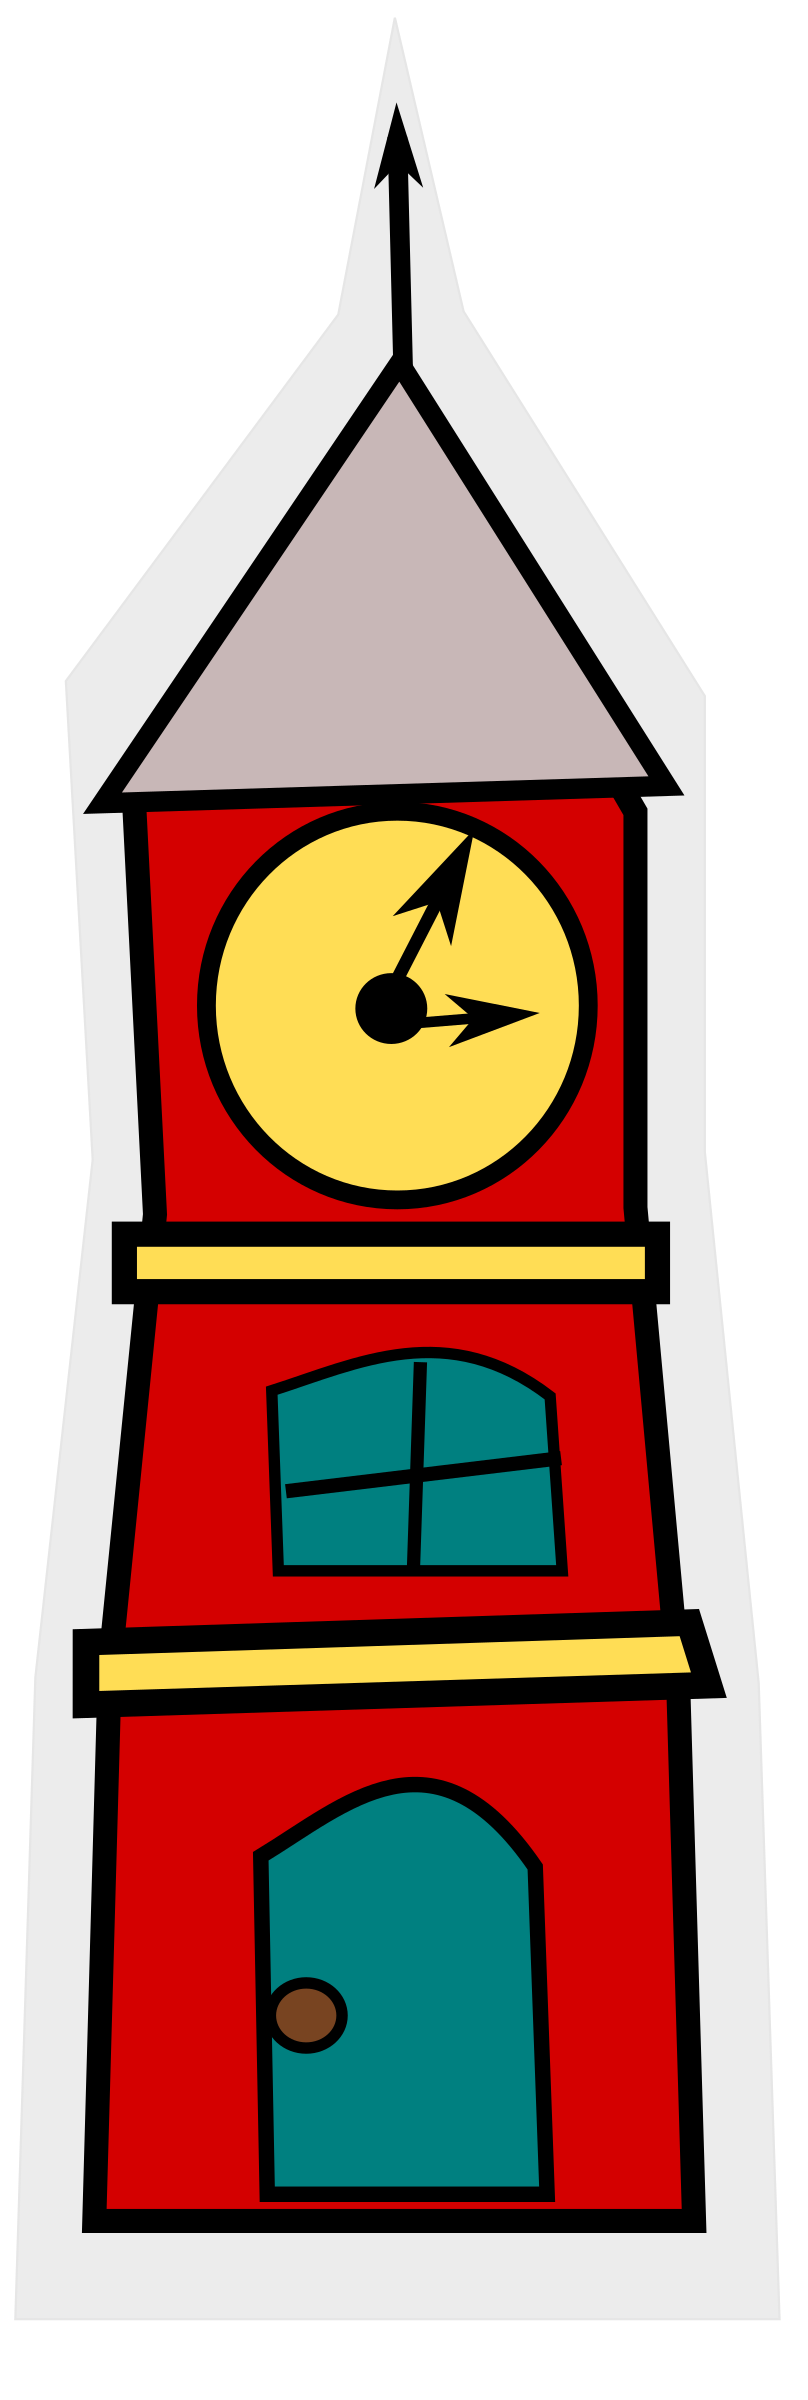 grandfather clock clipart at getdrawings com free for personal use rh getdrawings com old grandfather clock clipart free grandfather clock clipart